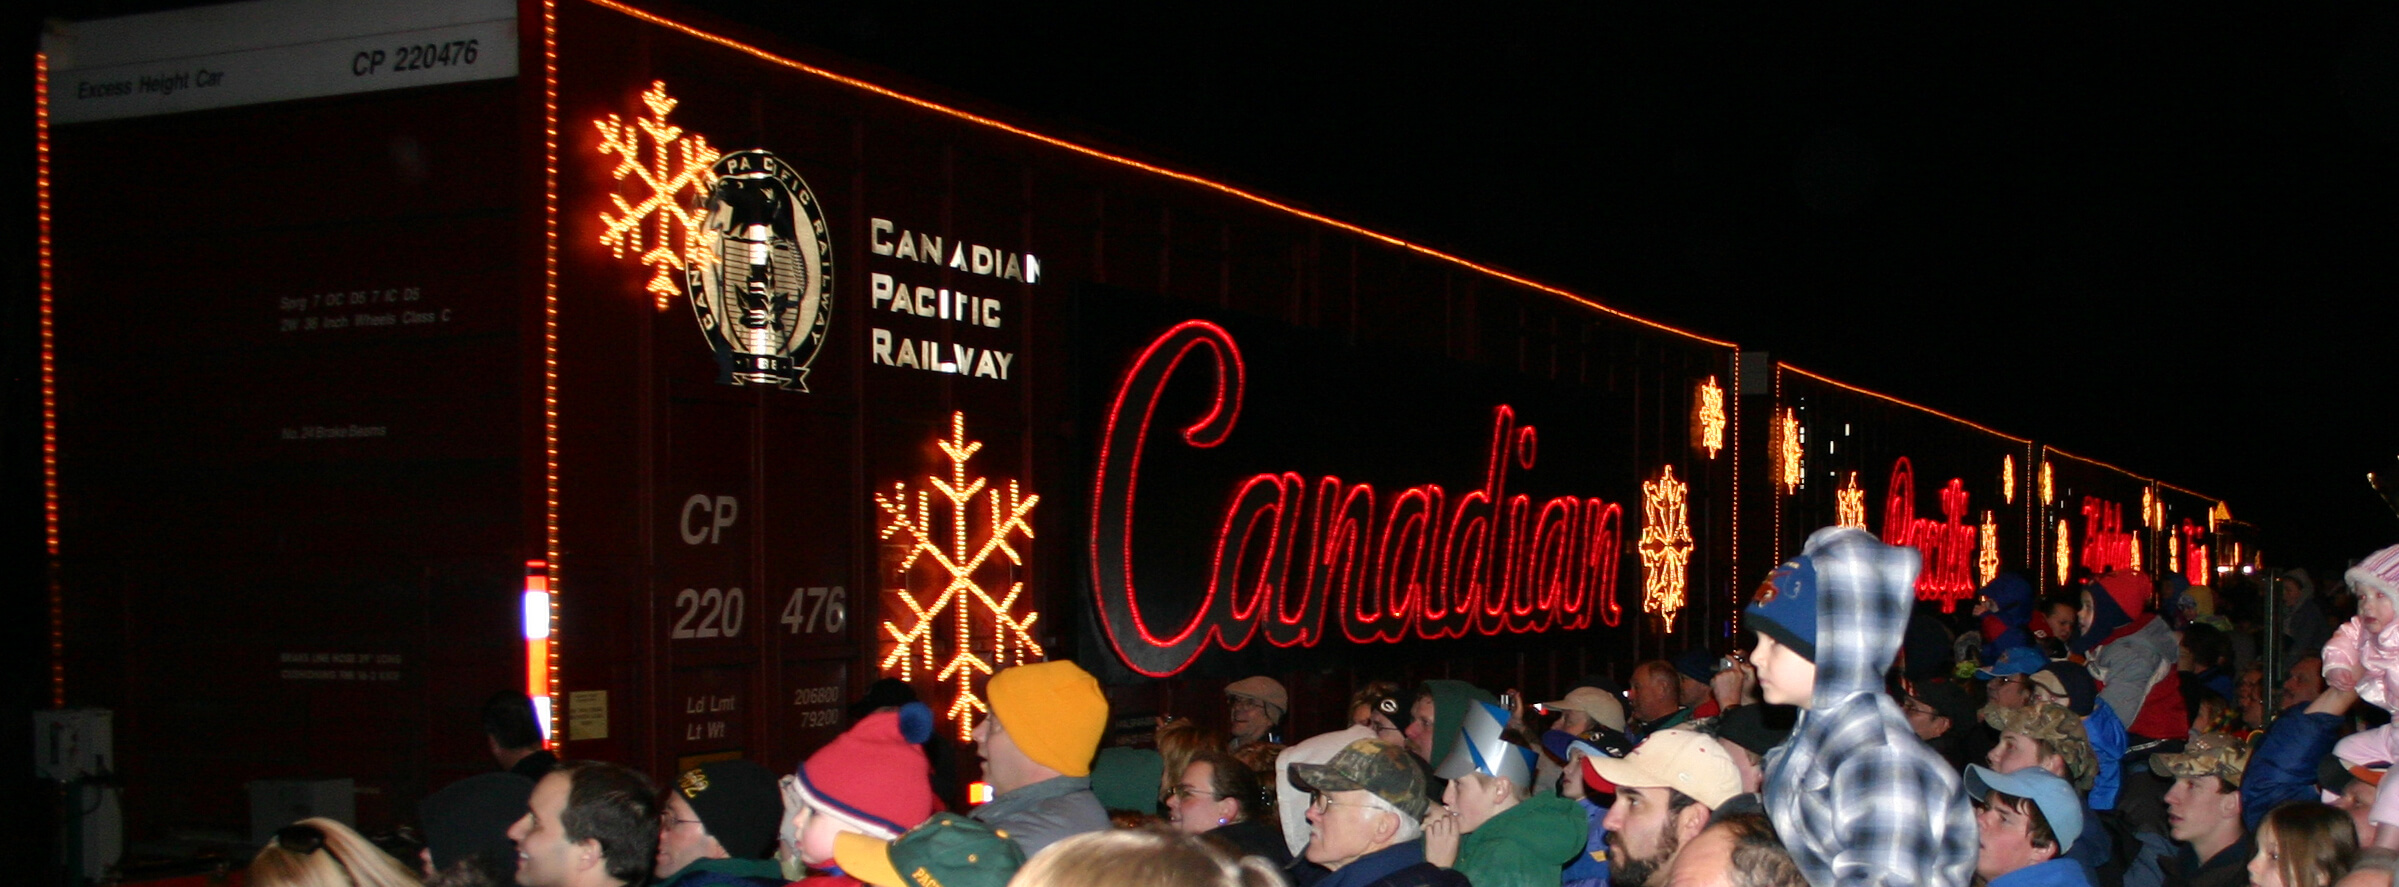 Canadian Pacific Railway S Holiday Train December 2019